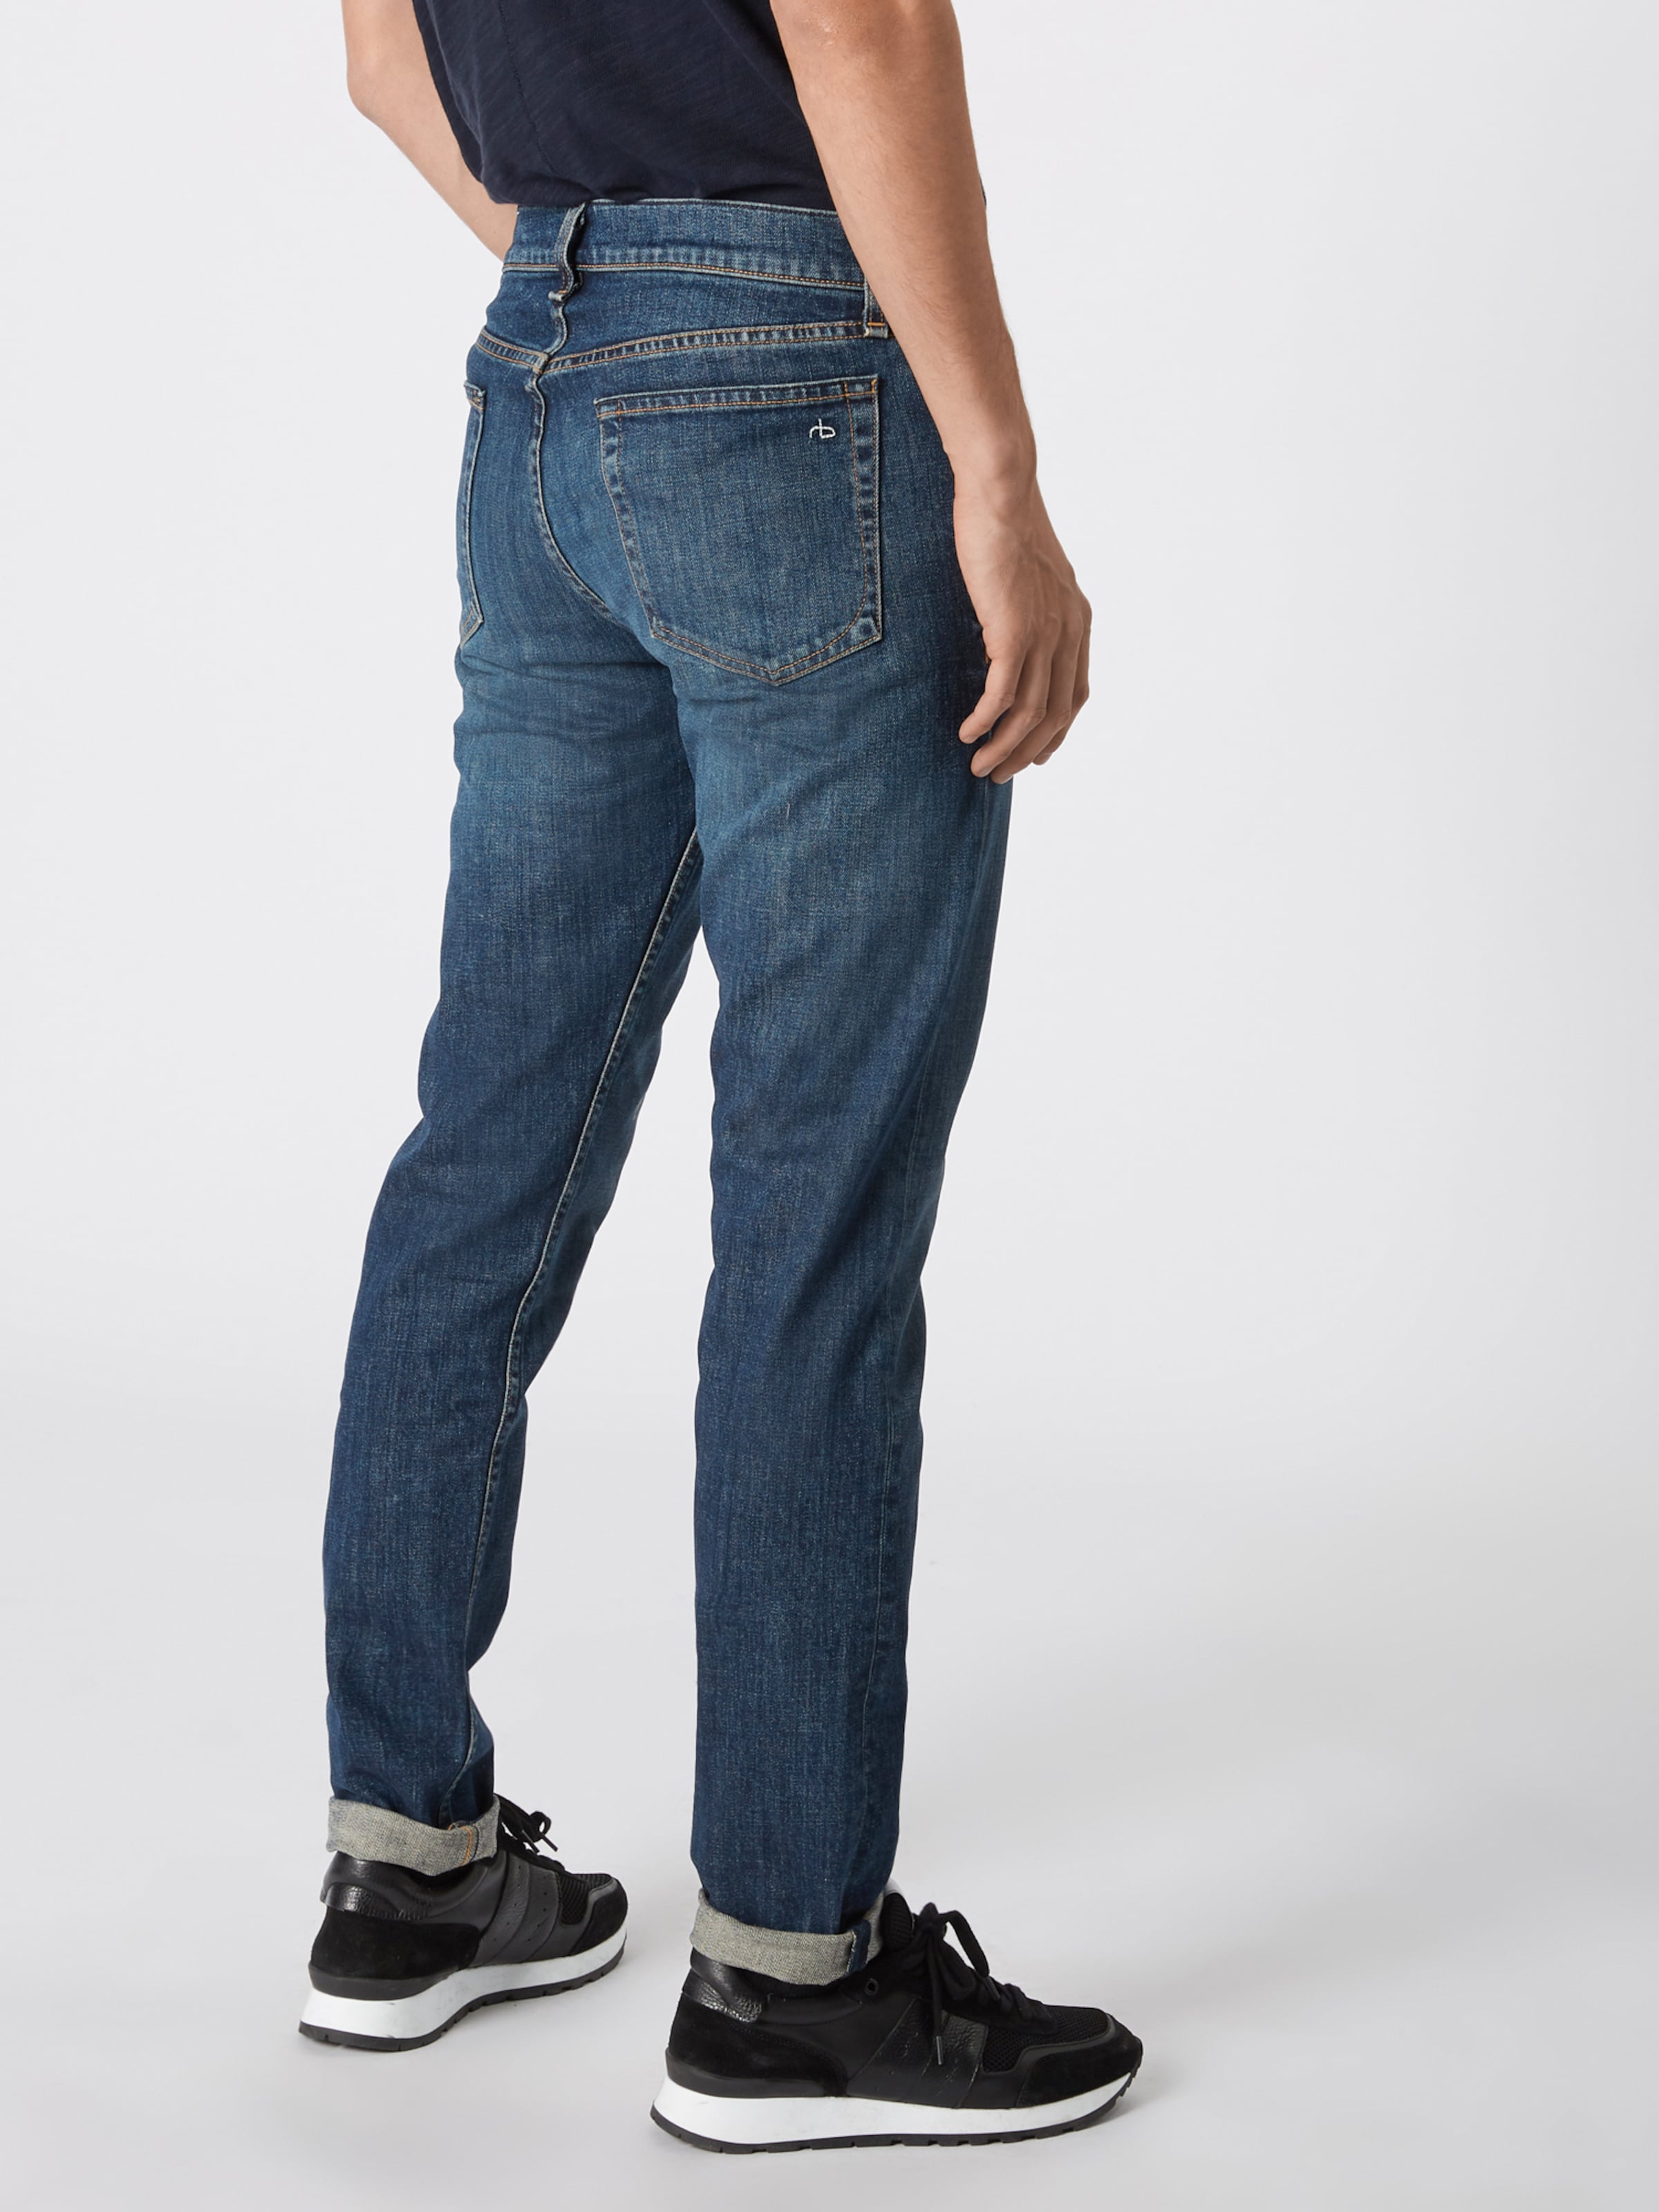 Bone 2' Jeans 'rgb Fit Denim In Ragamp; Blue zMGLVjqUSp